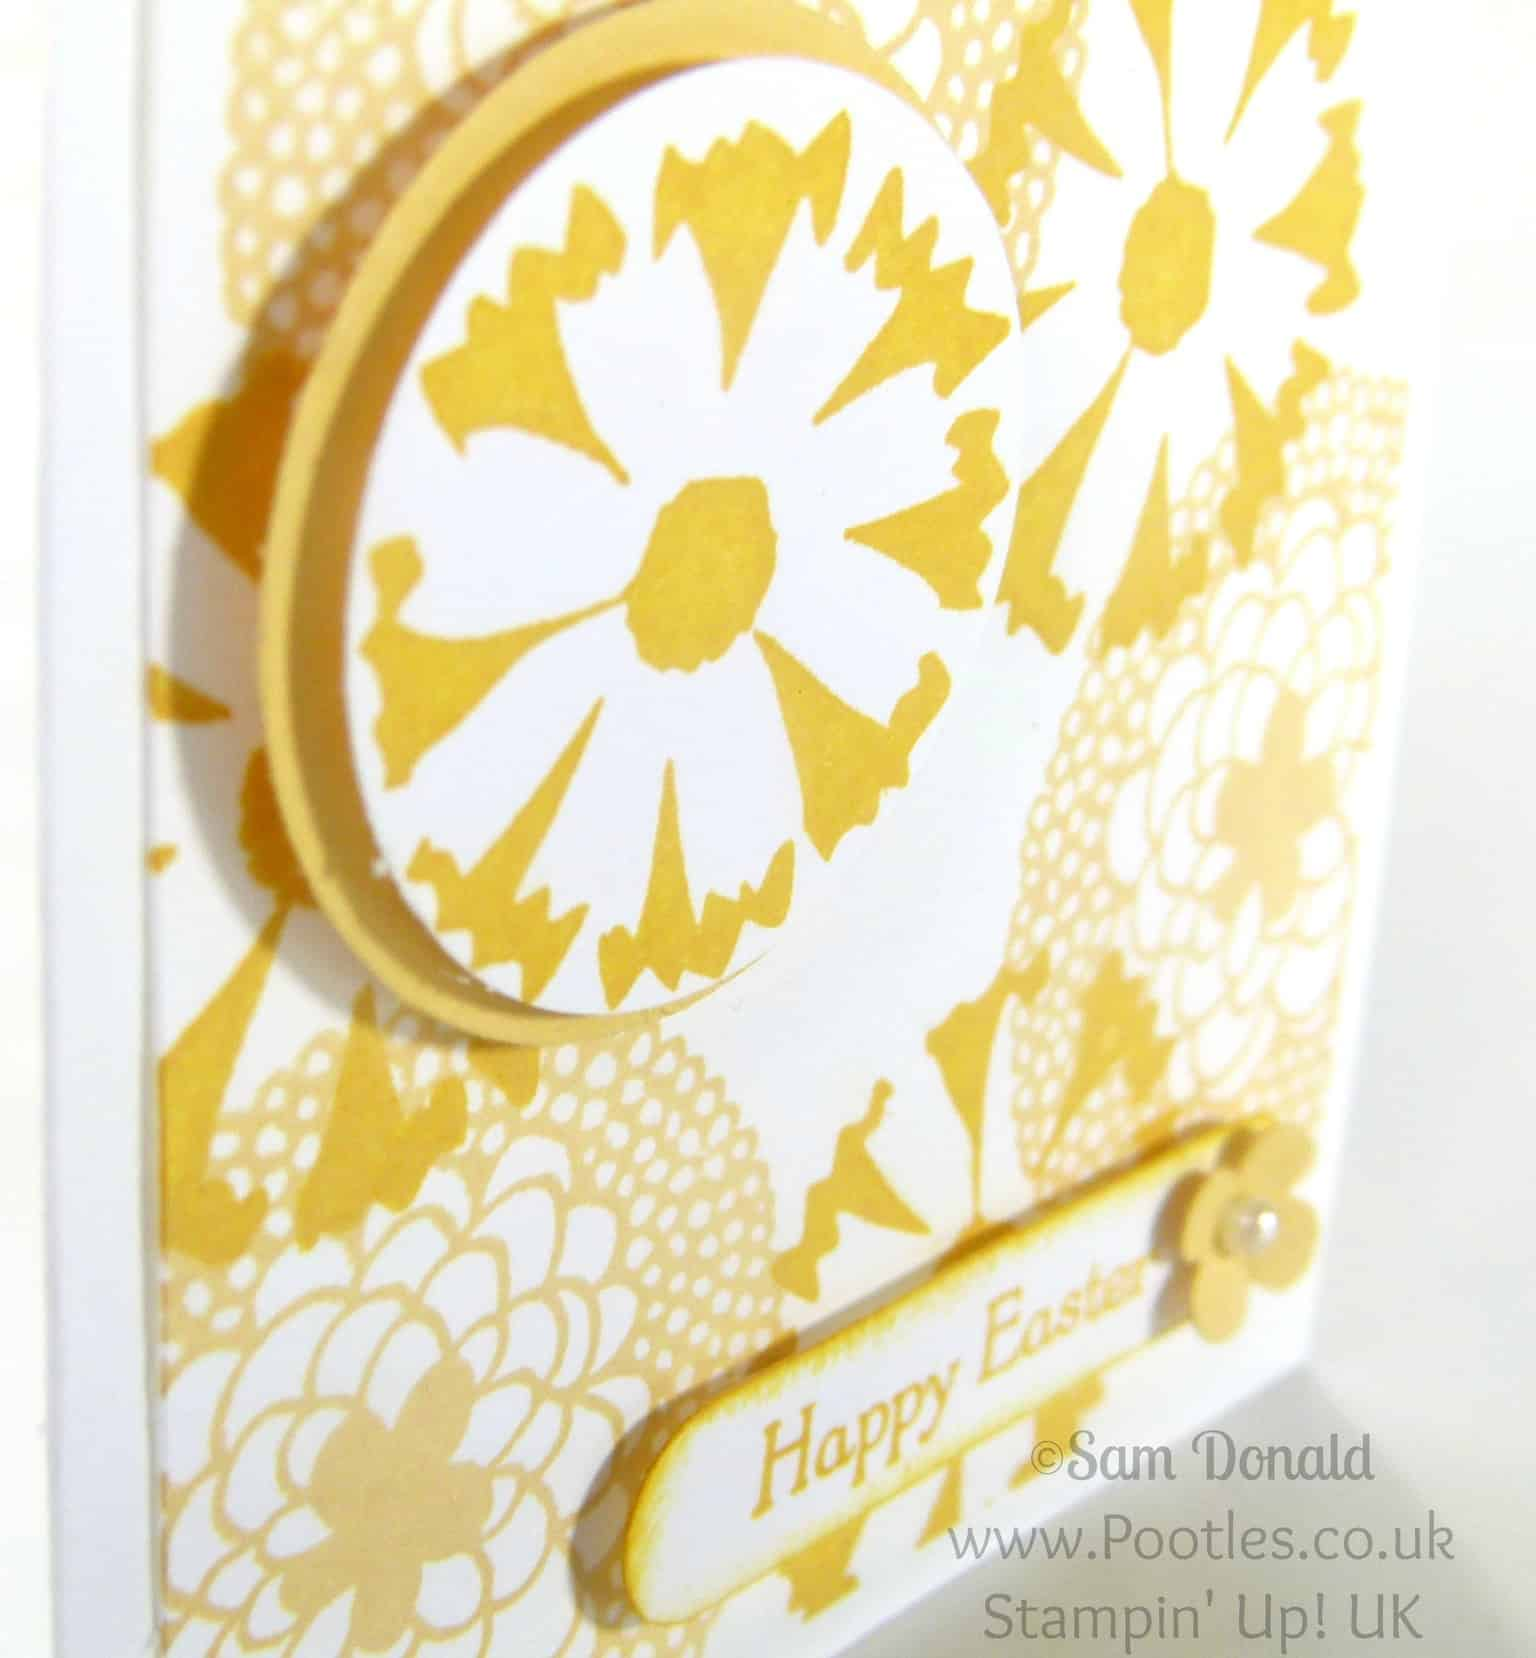 POOTLES Stampin' Up! UK Petal Parade 3x3 Easter Card Showcase Close Up